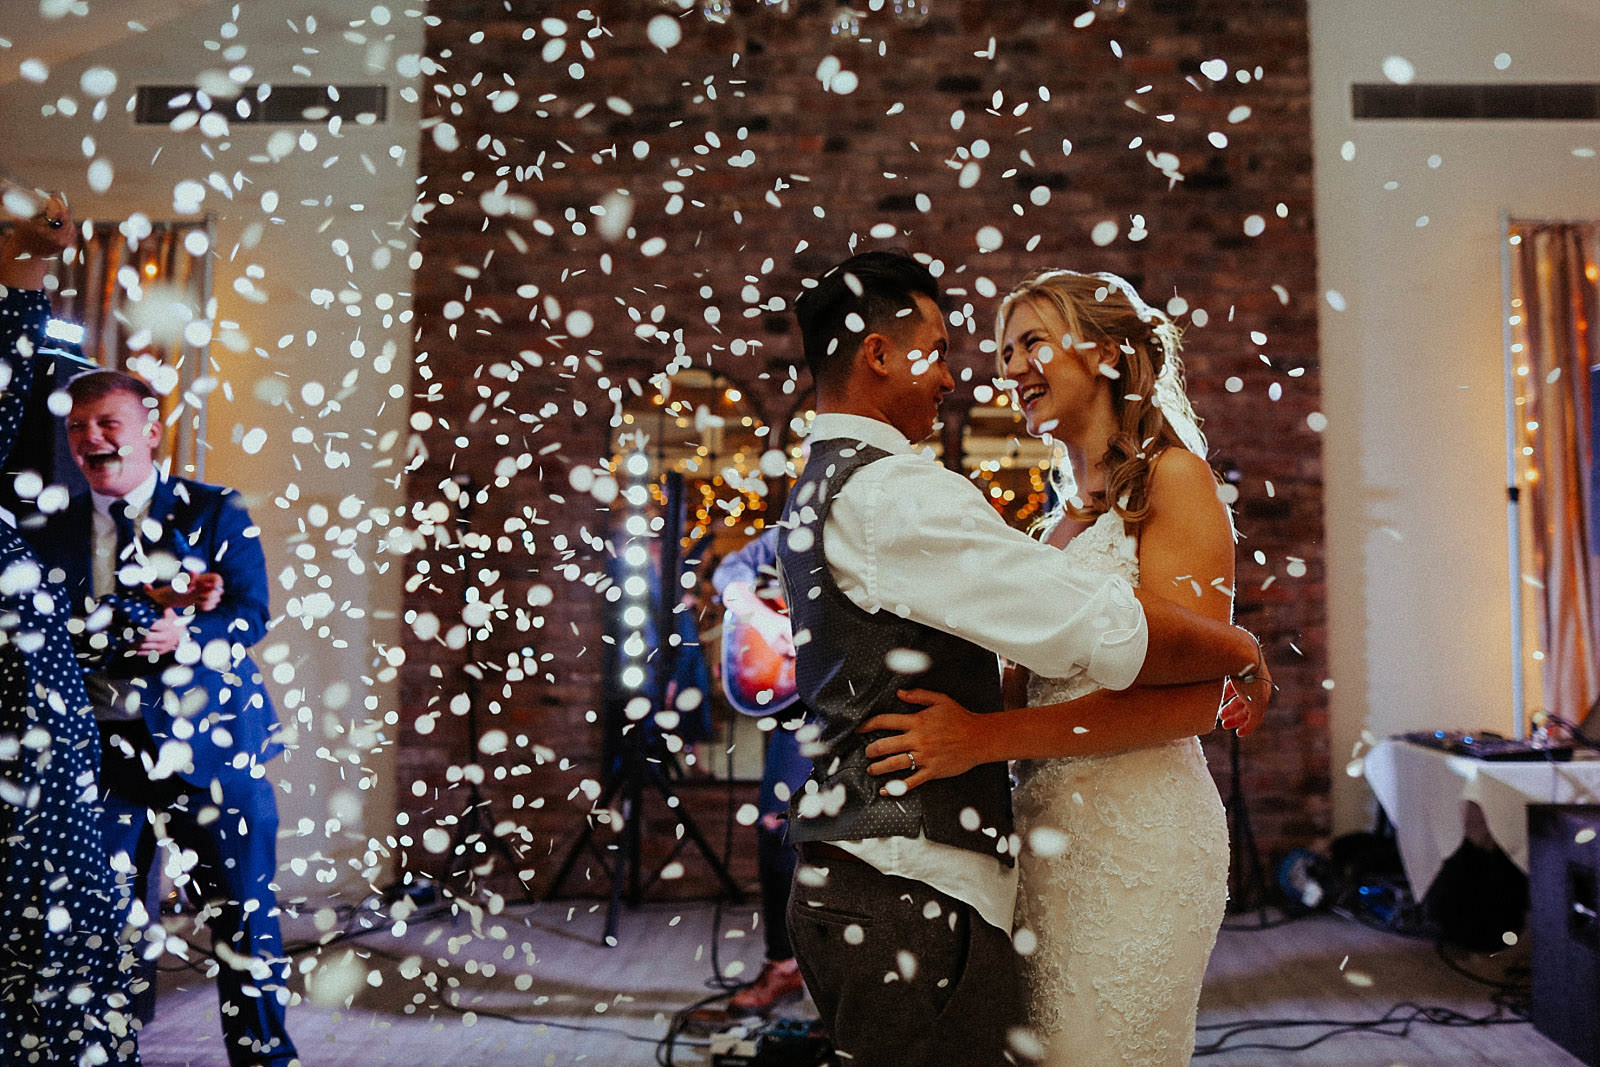 bride and groom dancing in confetti during their first dance